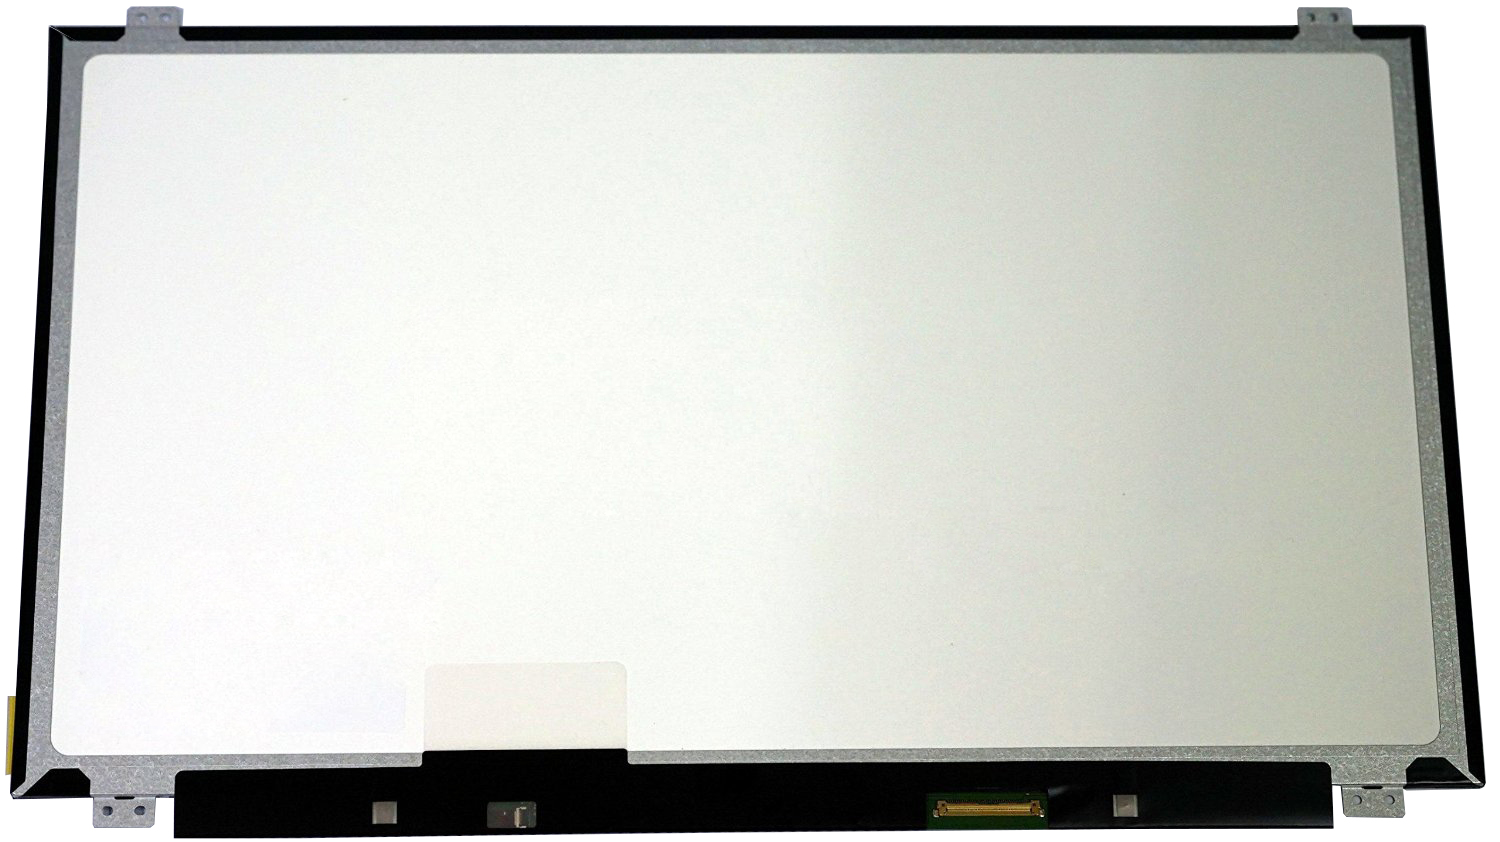 QuYing Laptop LCD Screen for Acer CHROMEBOOK 15 CB5-571 C910 CB3-531 SERIES (15.6 inch 1366x768 30Pin N) quying laptop lcd screen for acer extensa 5235 as5551 series 15 6 inch 1366x768 40pin tk